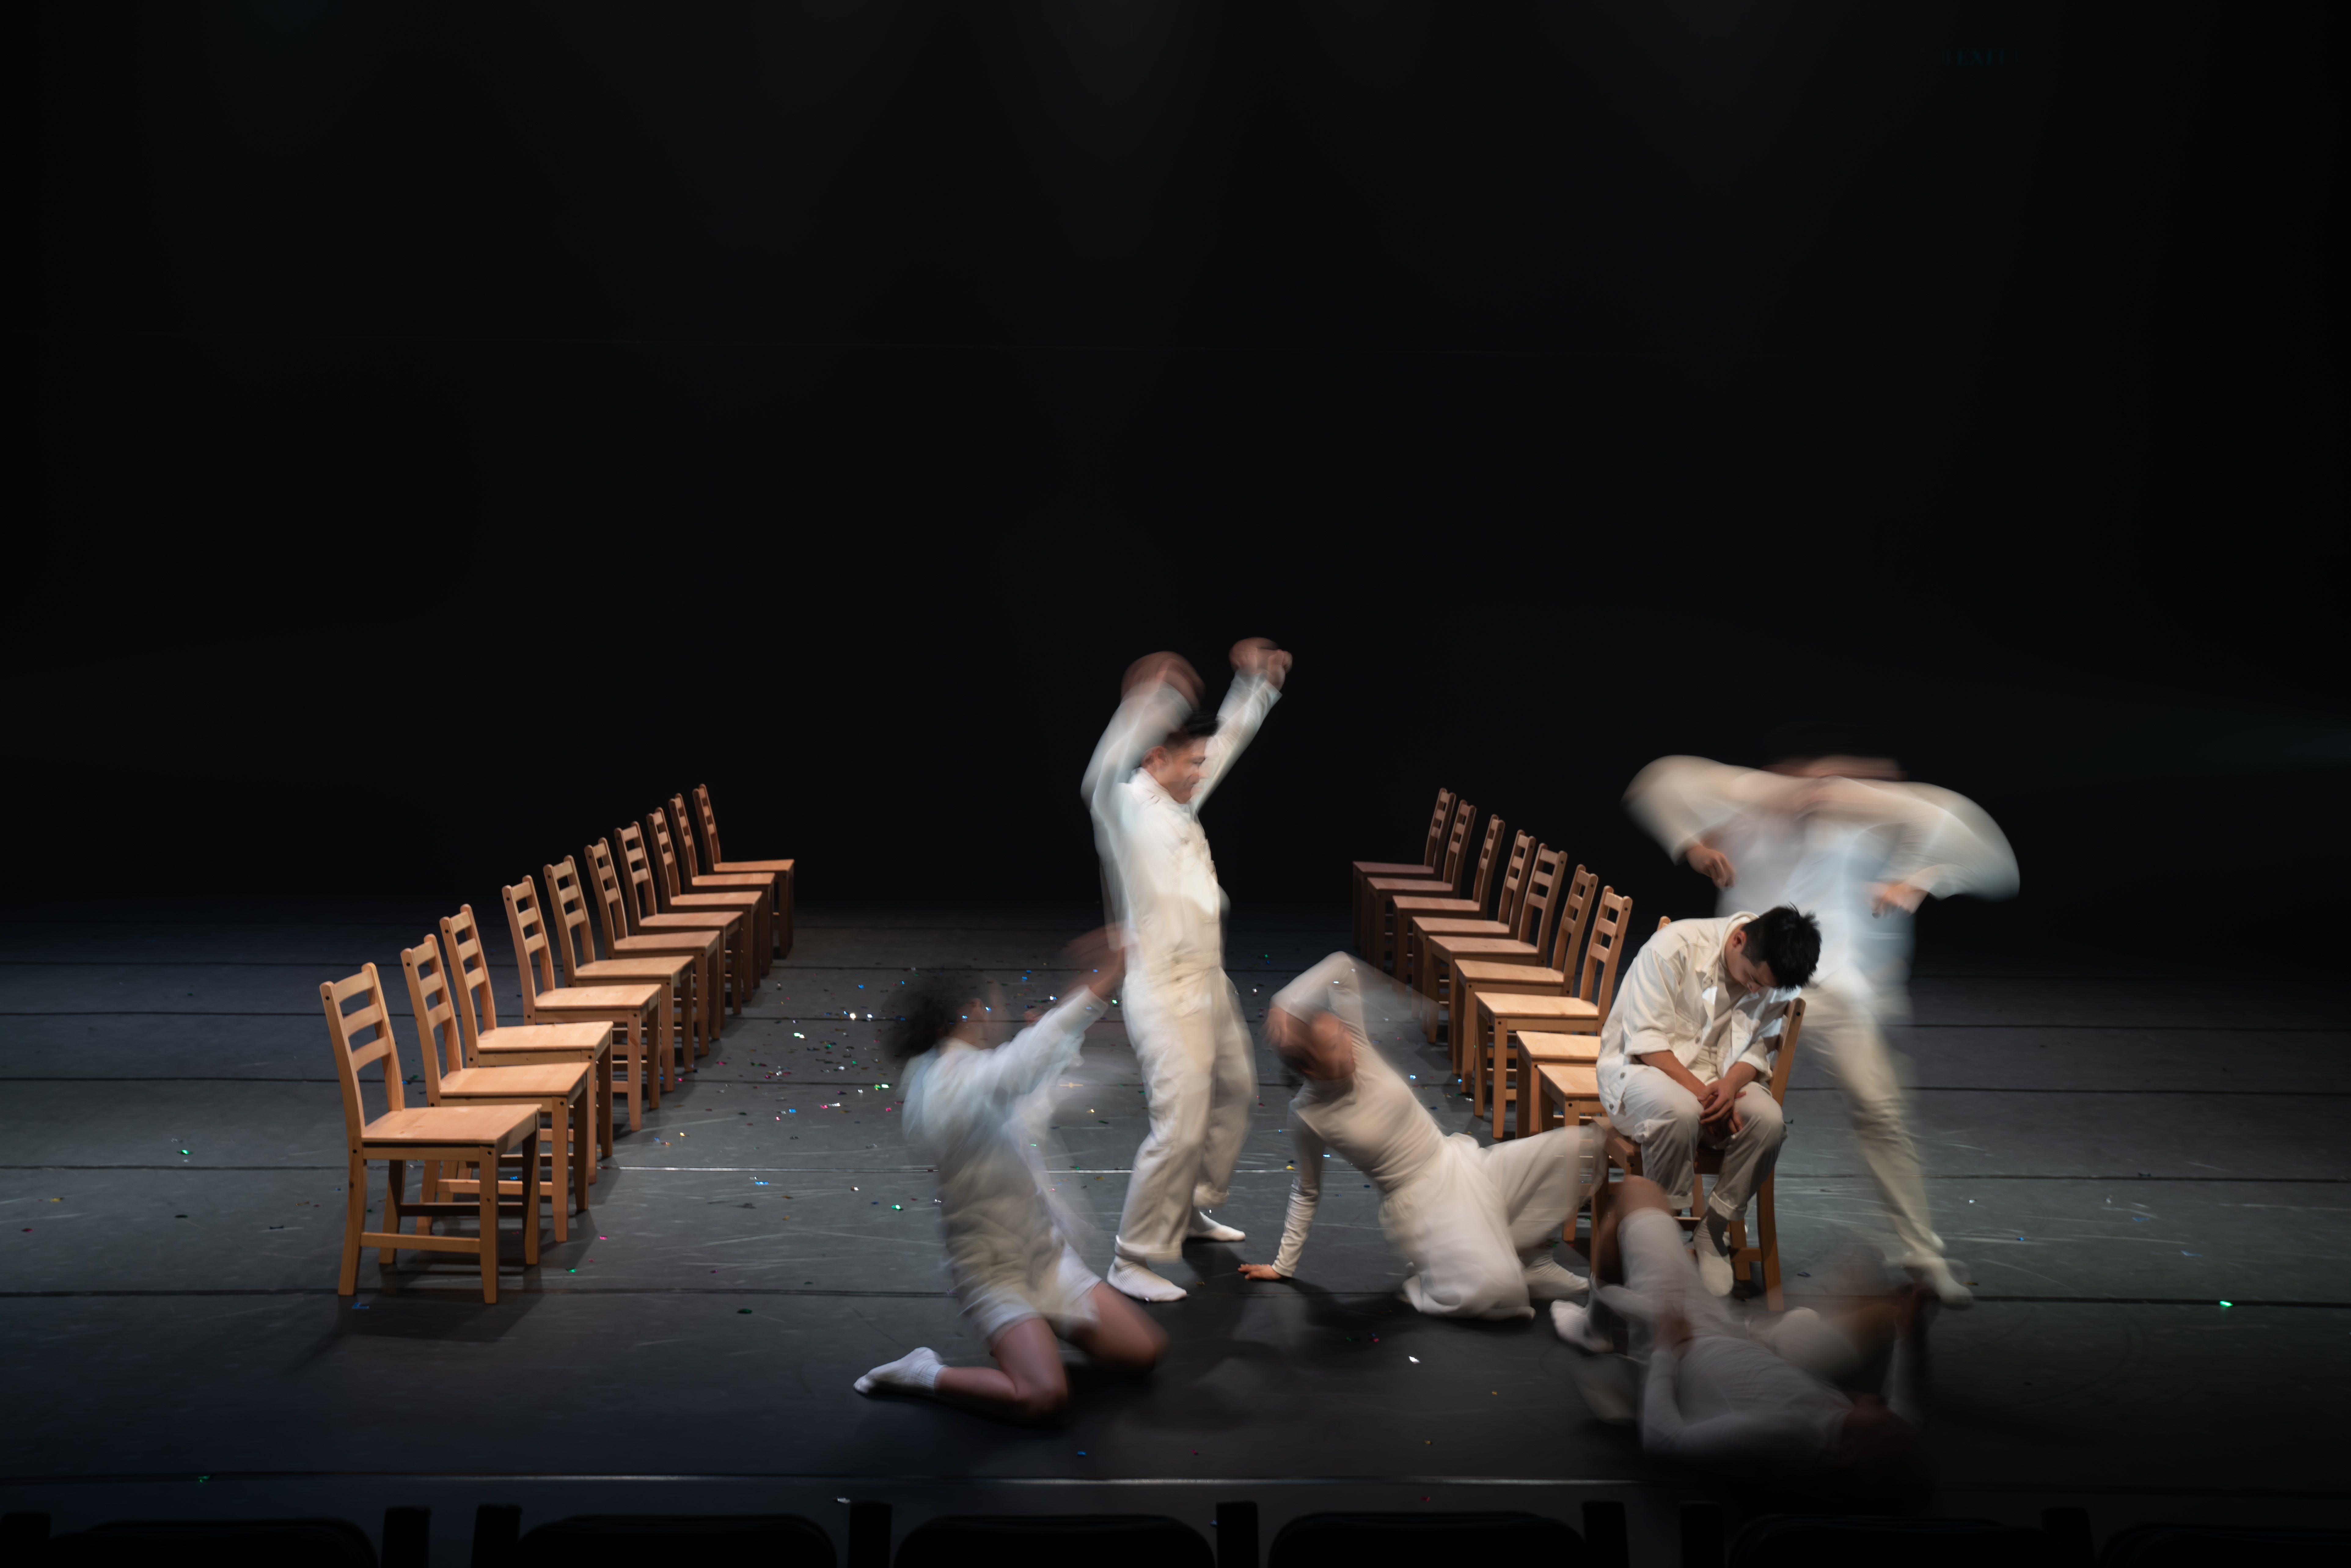 Two of the tenth edition programmes are the fruit of the cultural exchange between local and international dancers and choreographers—<i>Elephant in the Room</i>, co-choreographed by Chang Xiaoni (Beijing) and local dancers © Terry Tsang